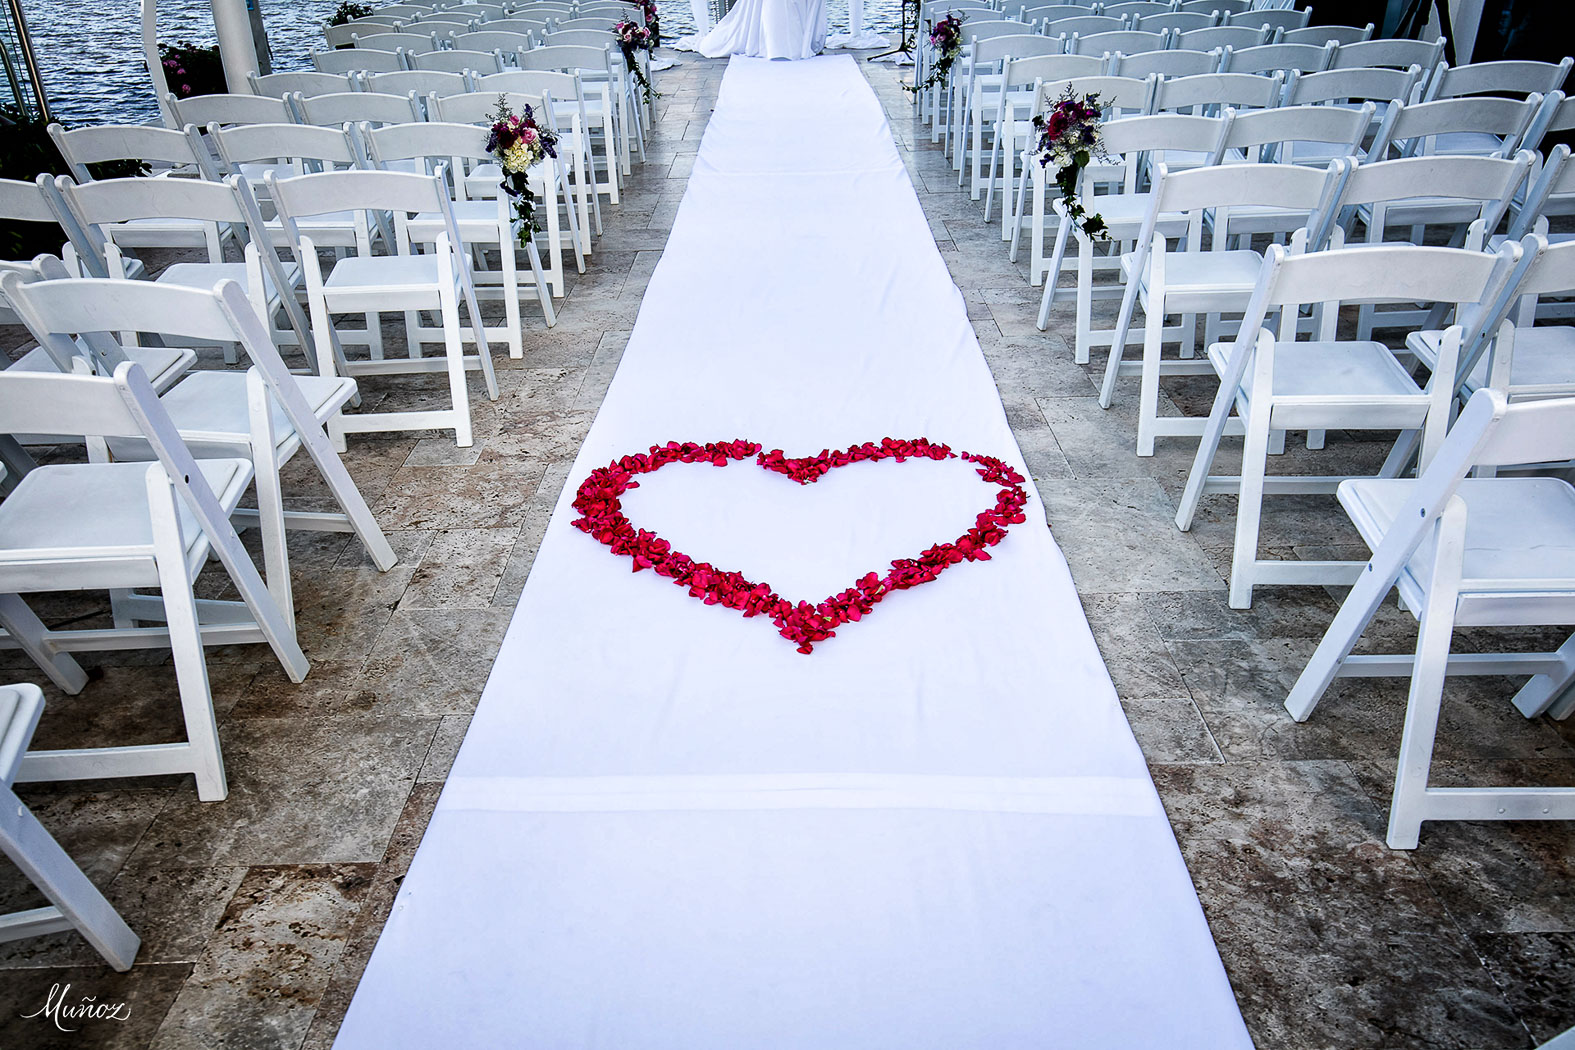 Rose petals in heart shape on wedding aisle toward altar